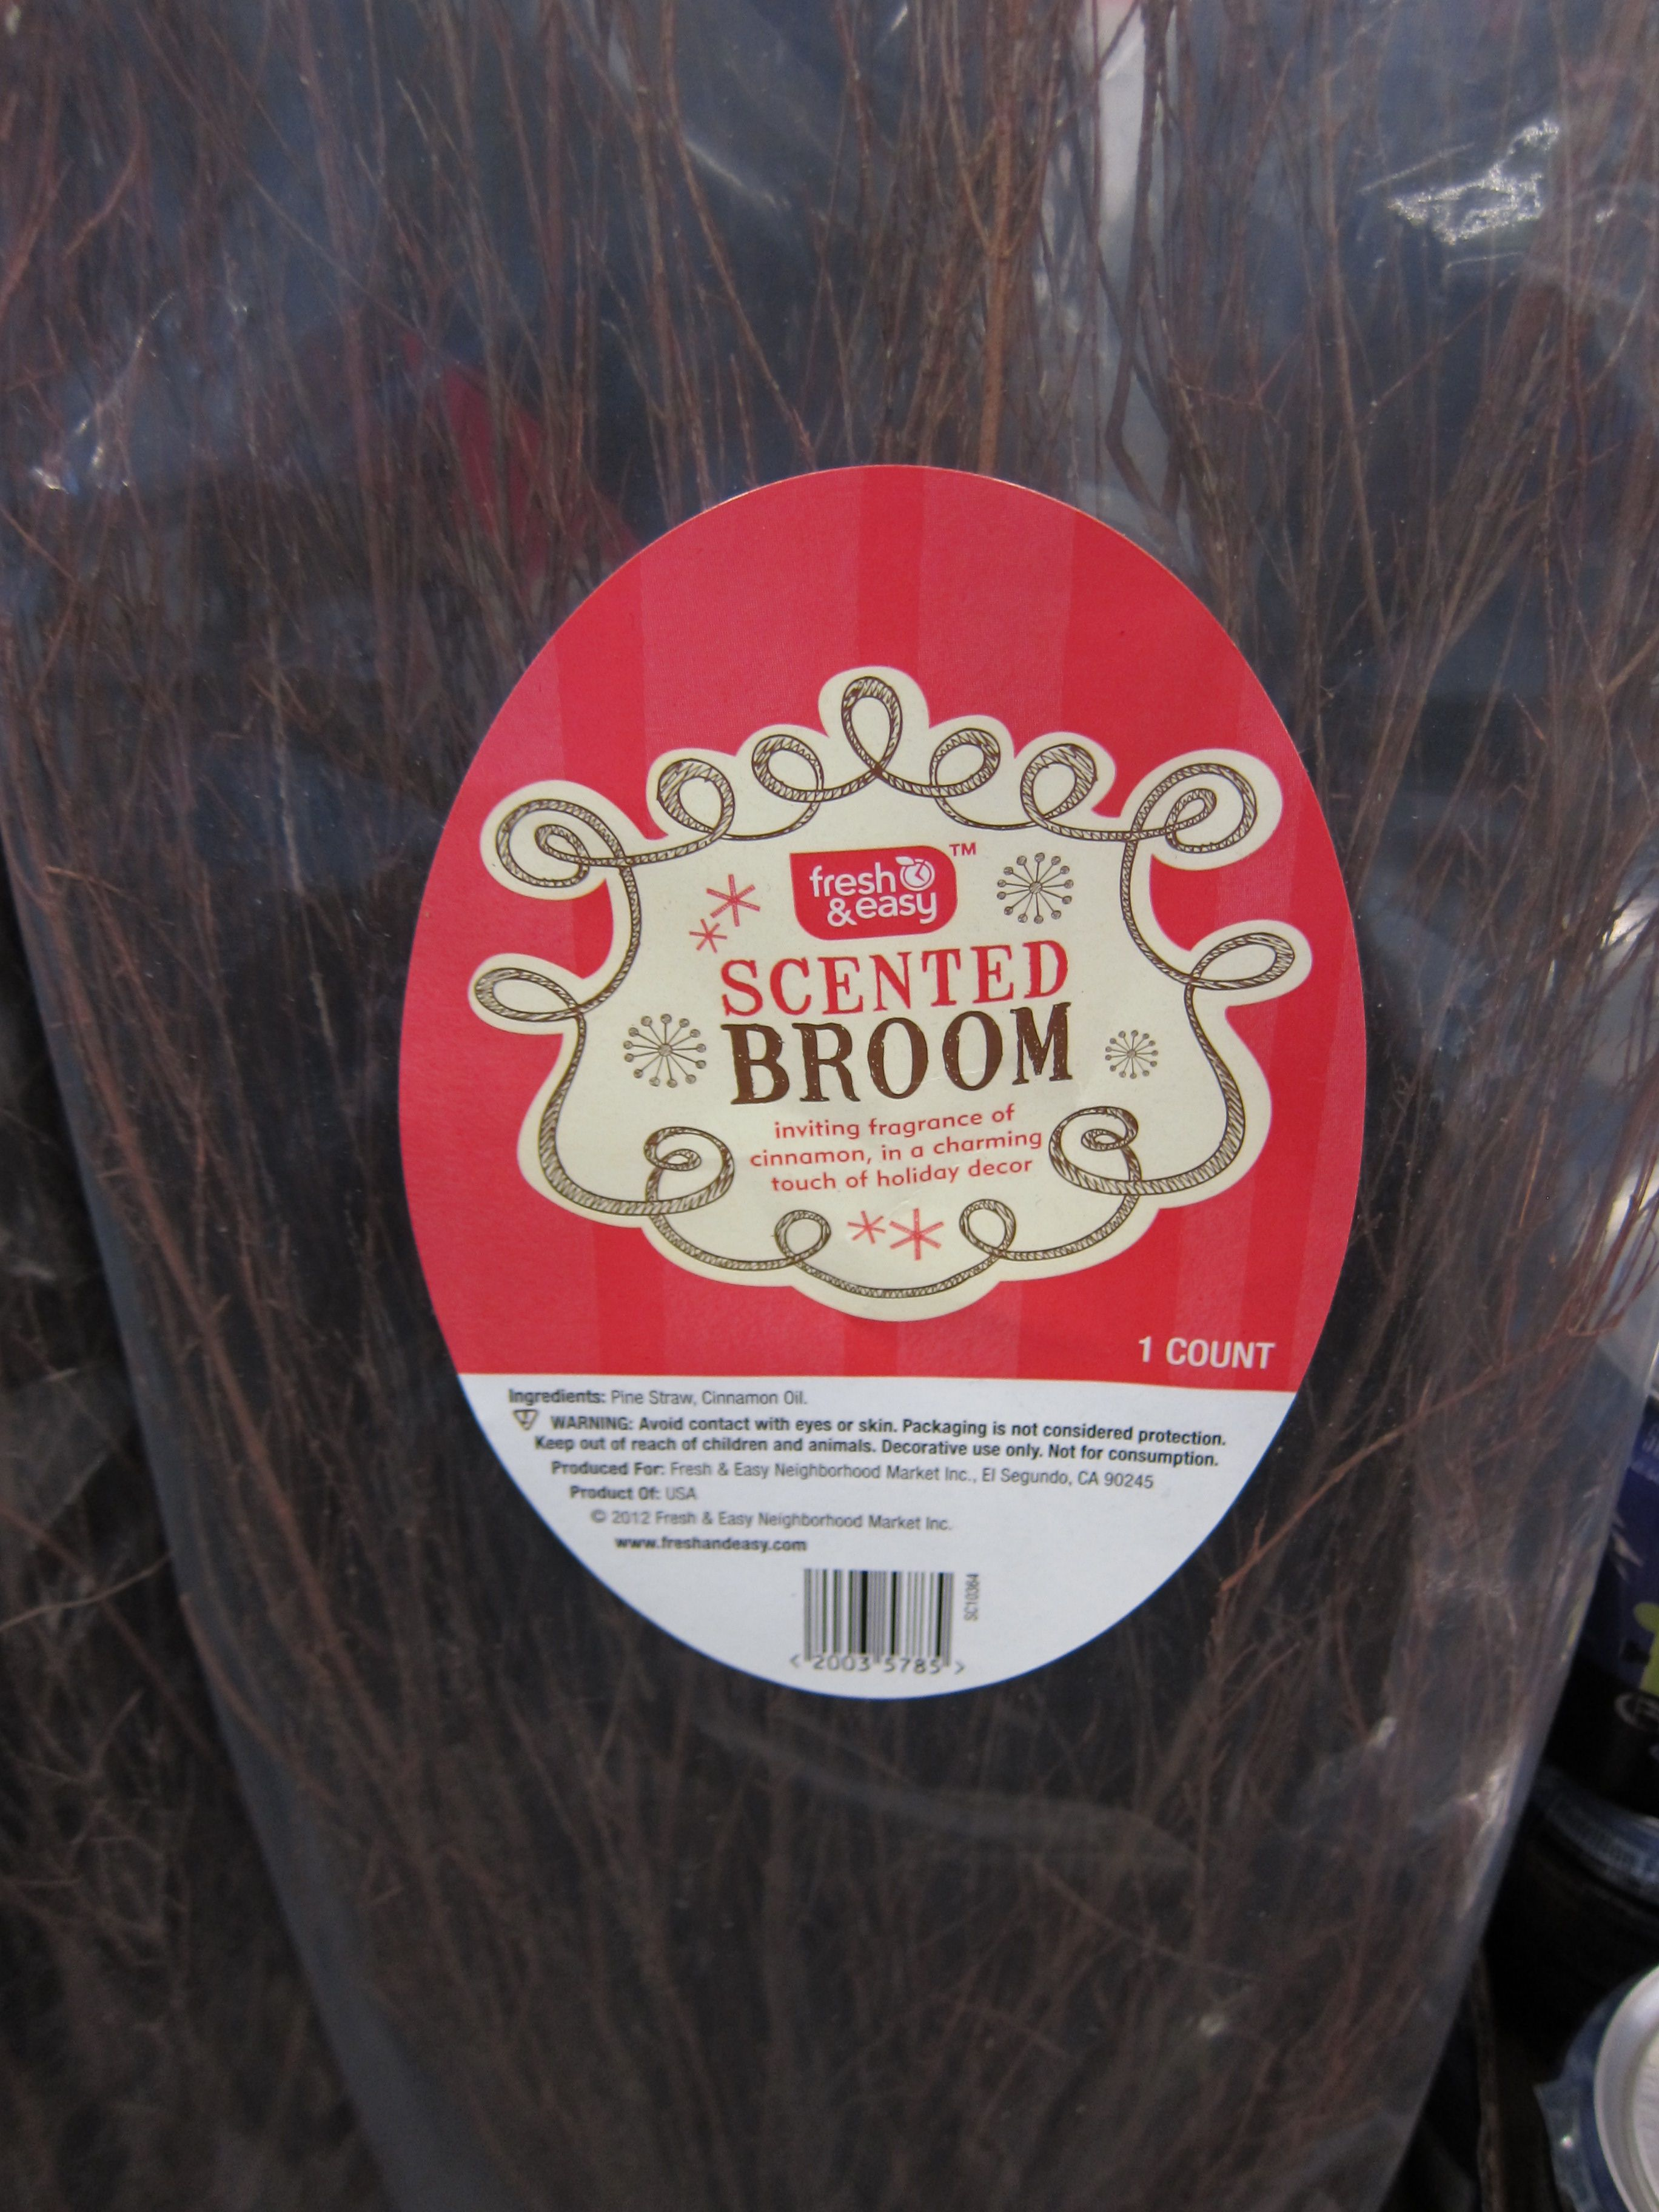 Brooms aren't just for witches – this one will make your home smell fantastic!